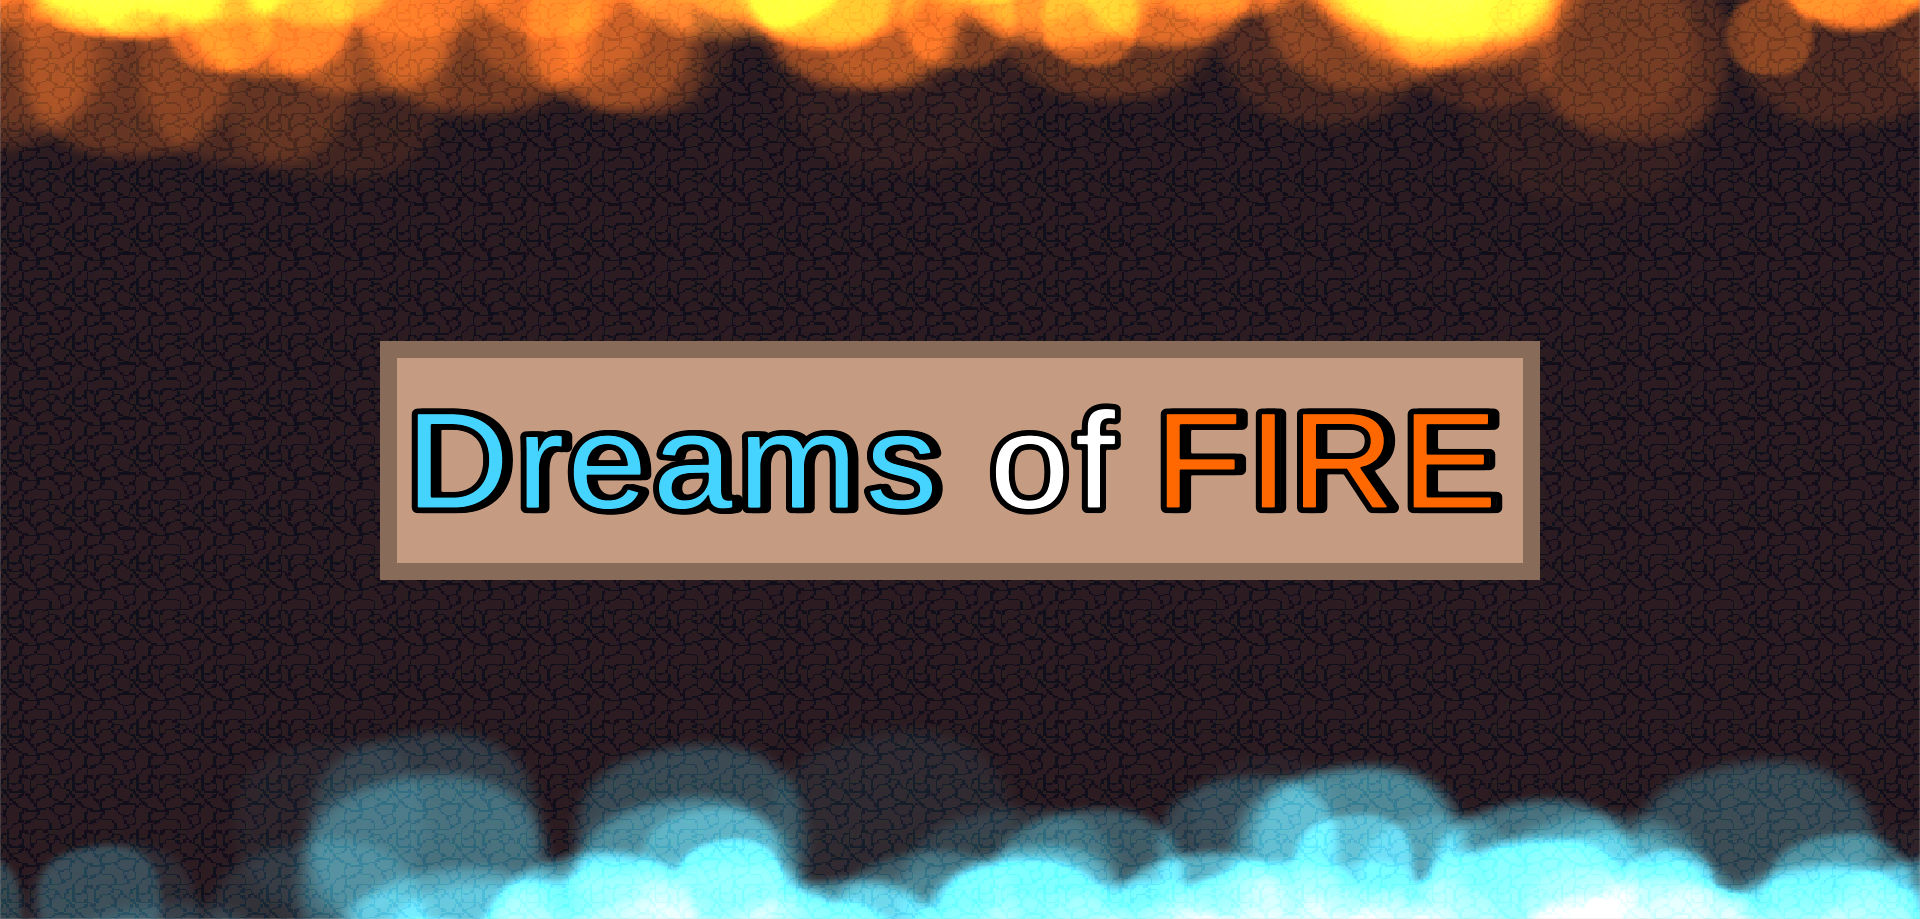 Dreams of Fire